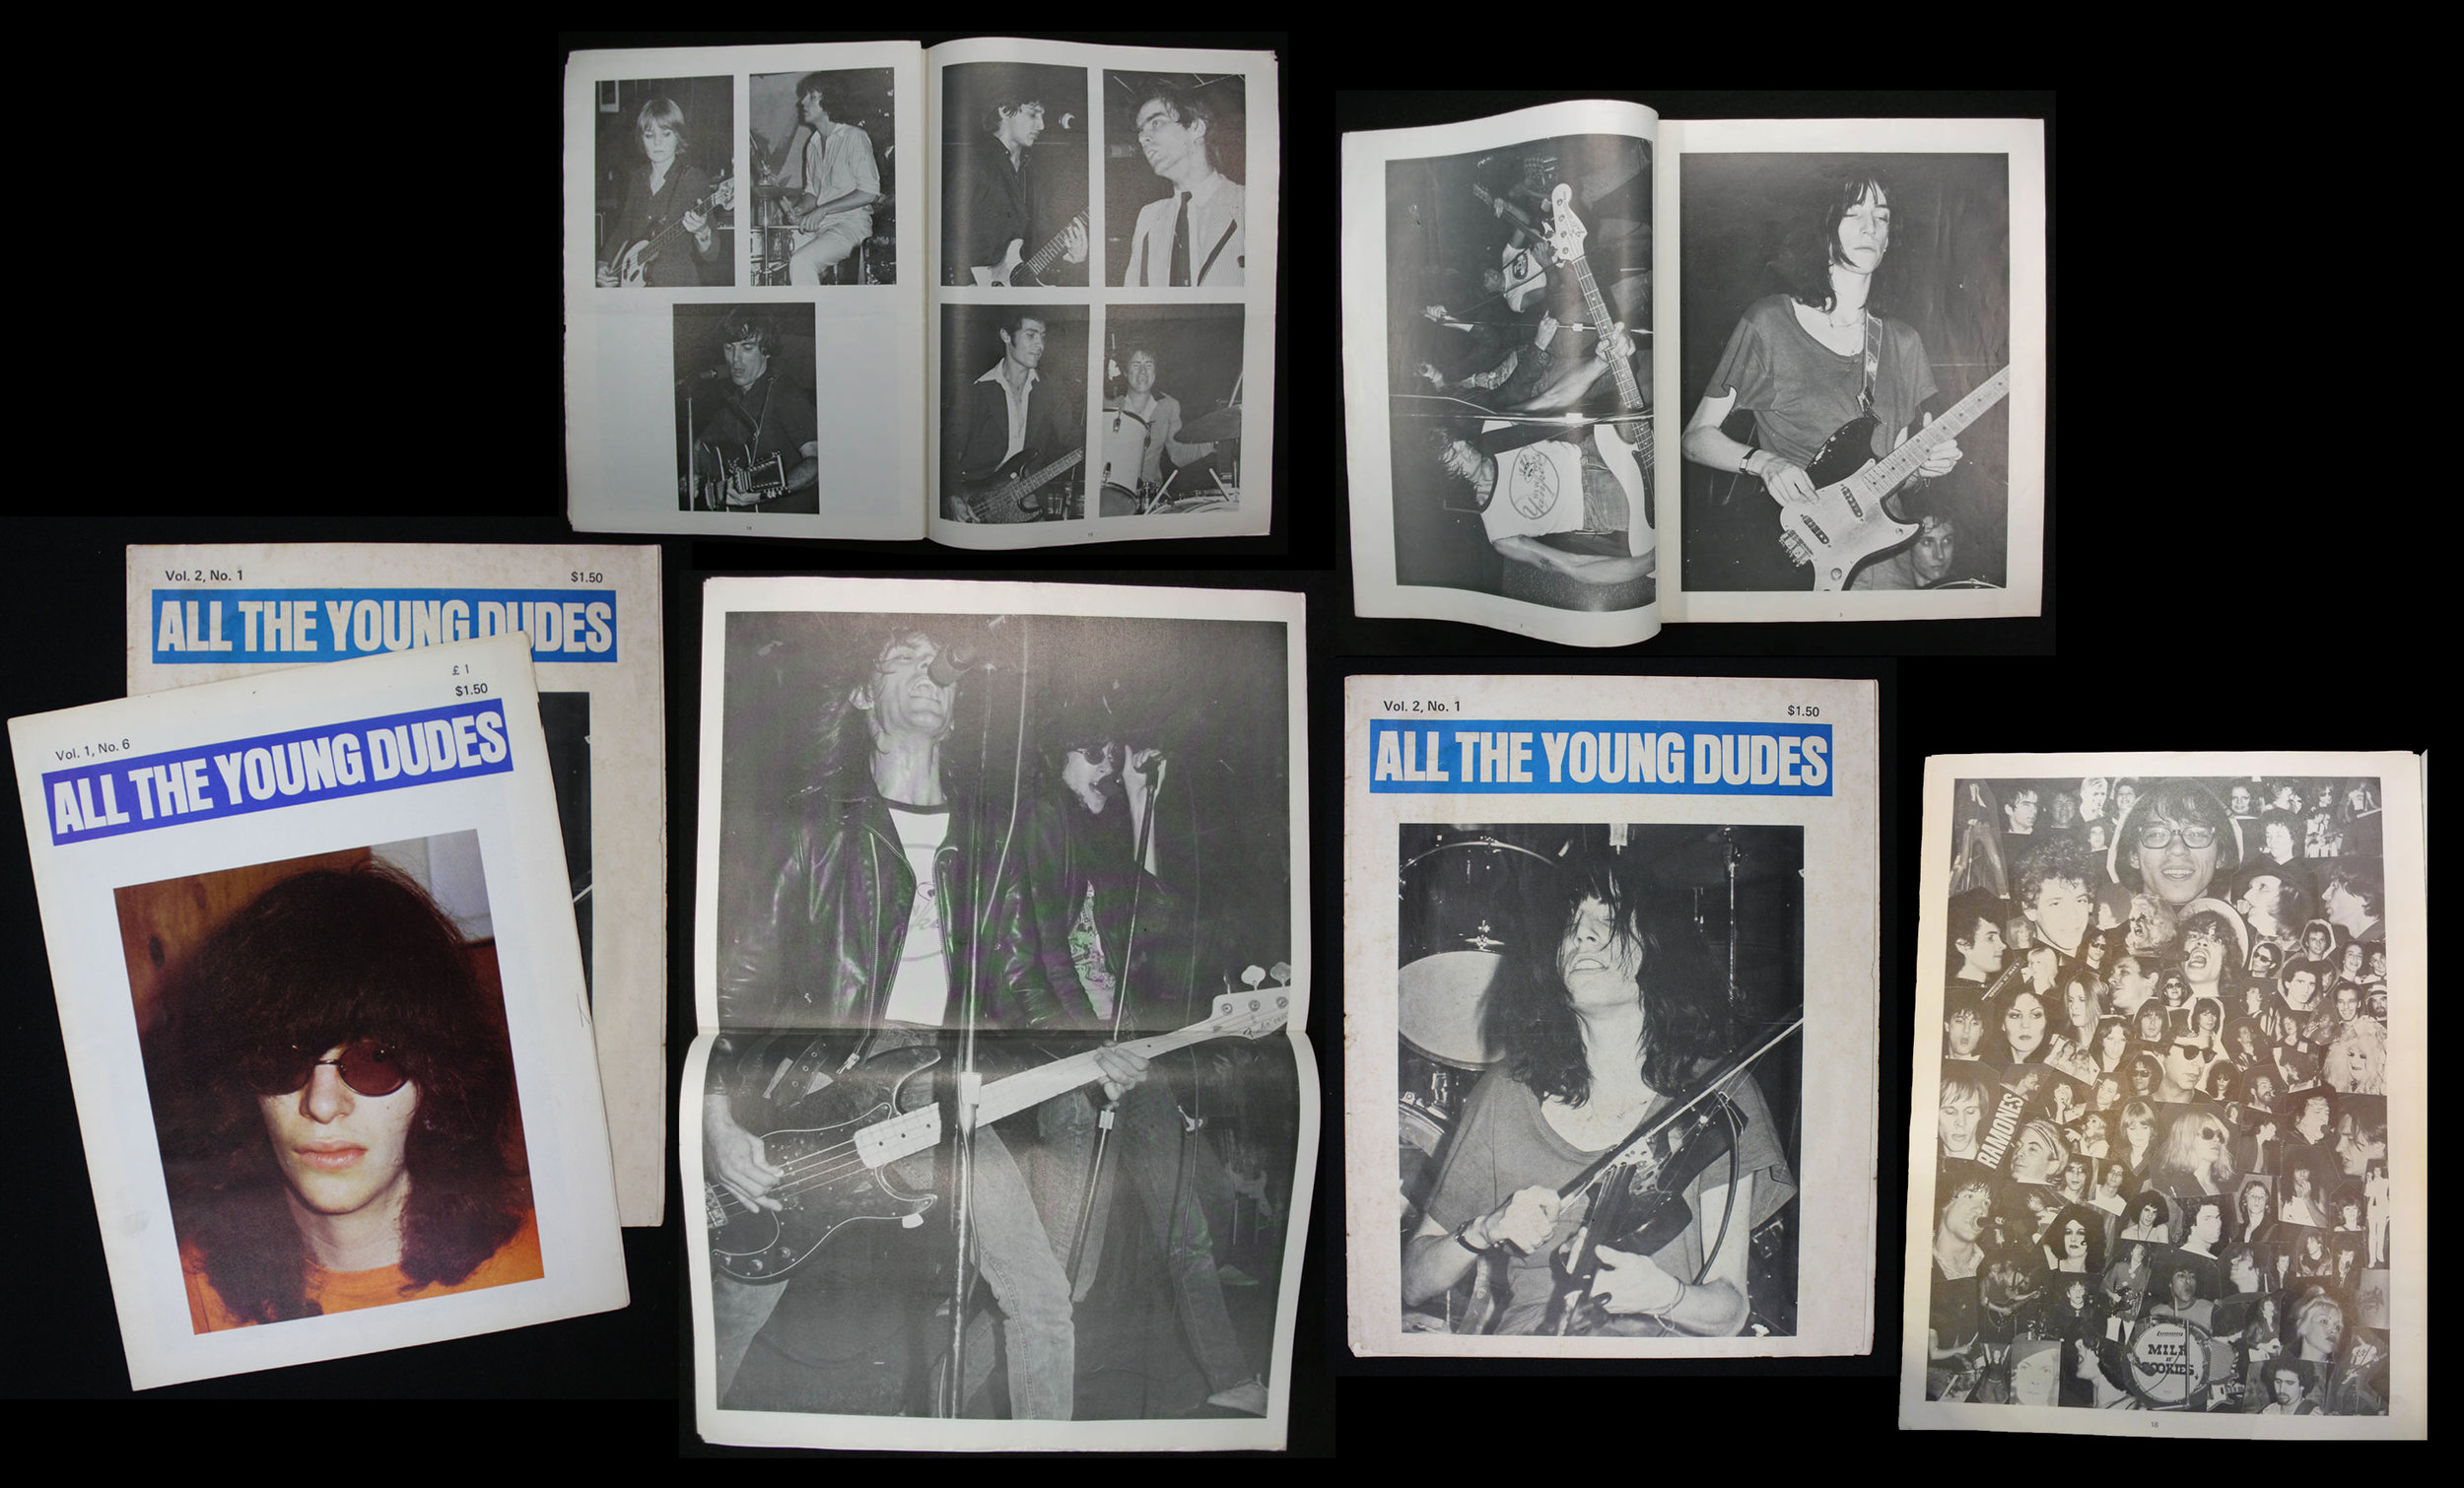 All_The_Young_Dudes_Collage.jpg